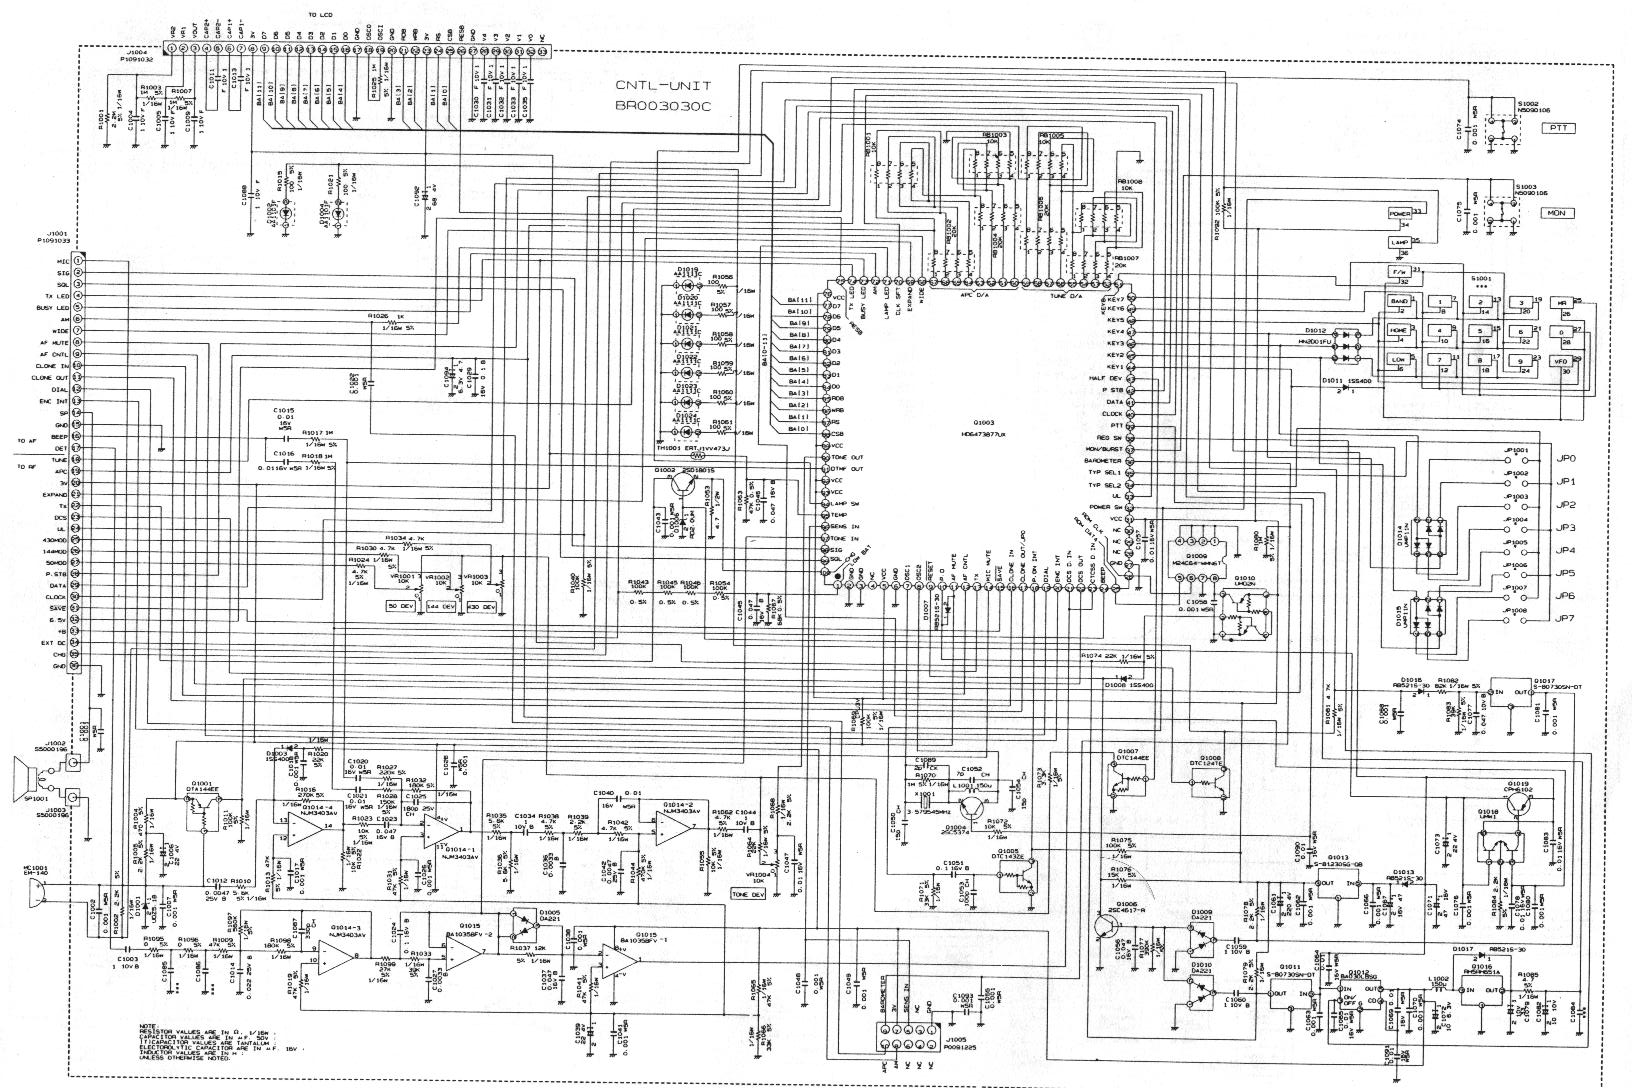 YAESU VX 5 Schematic b index of pub radio_manuals yaesu Yaesu G-450A at n-0.co